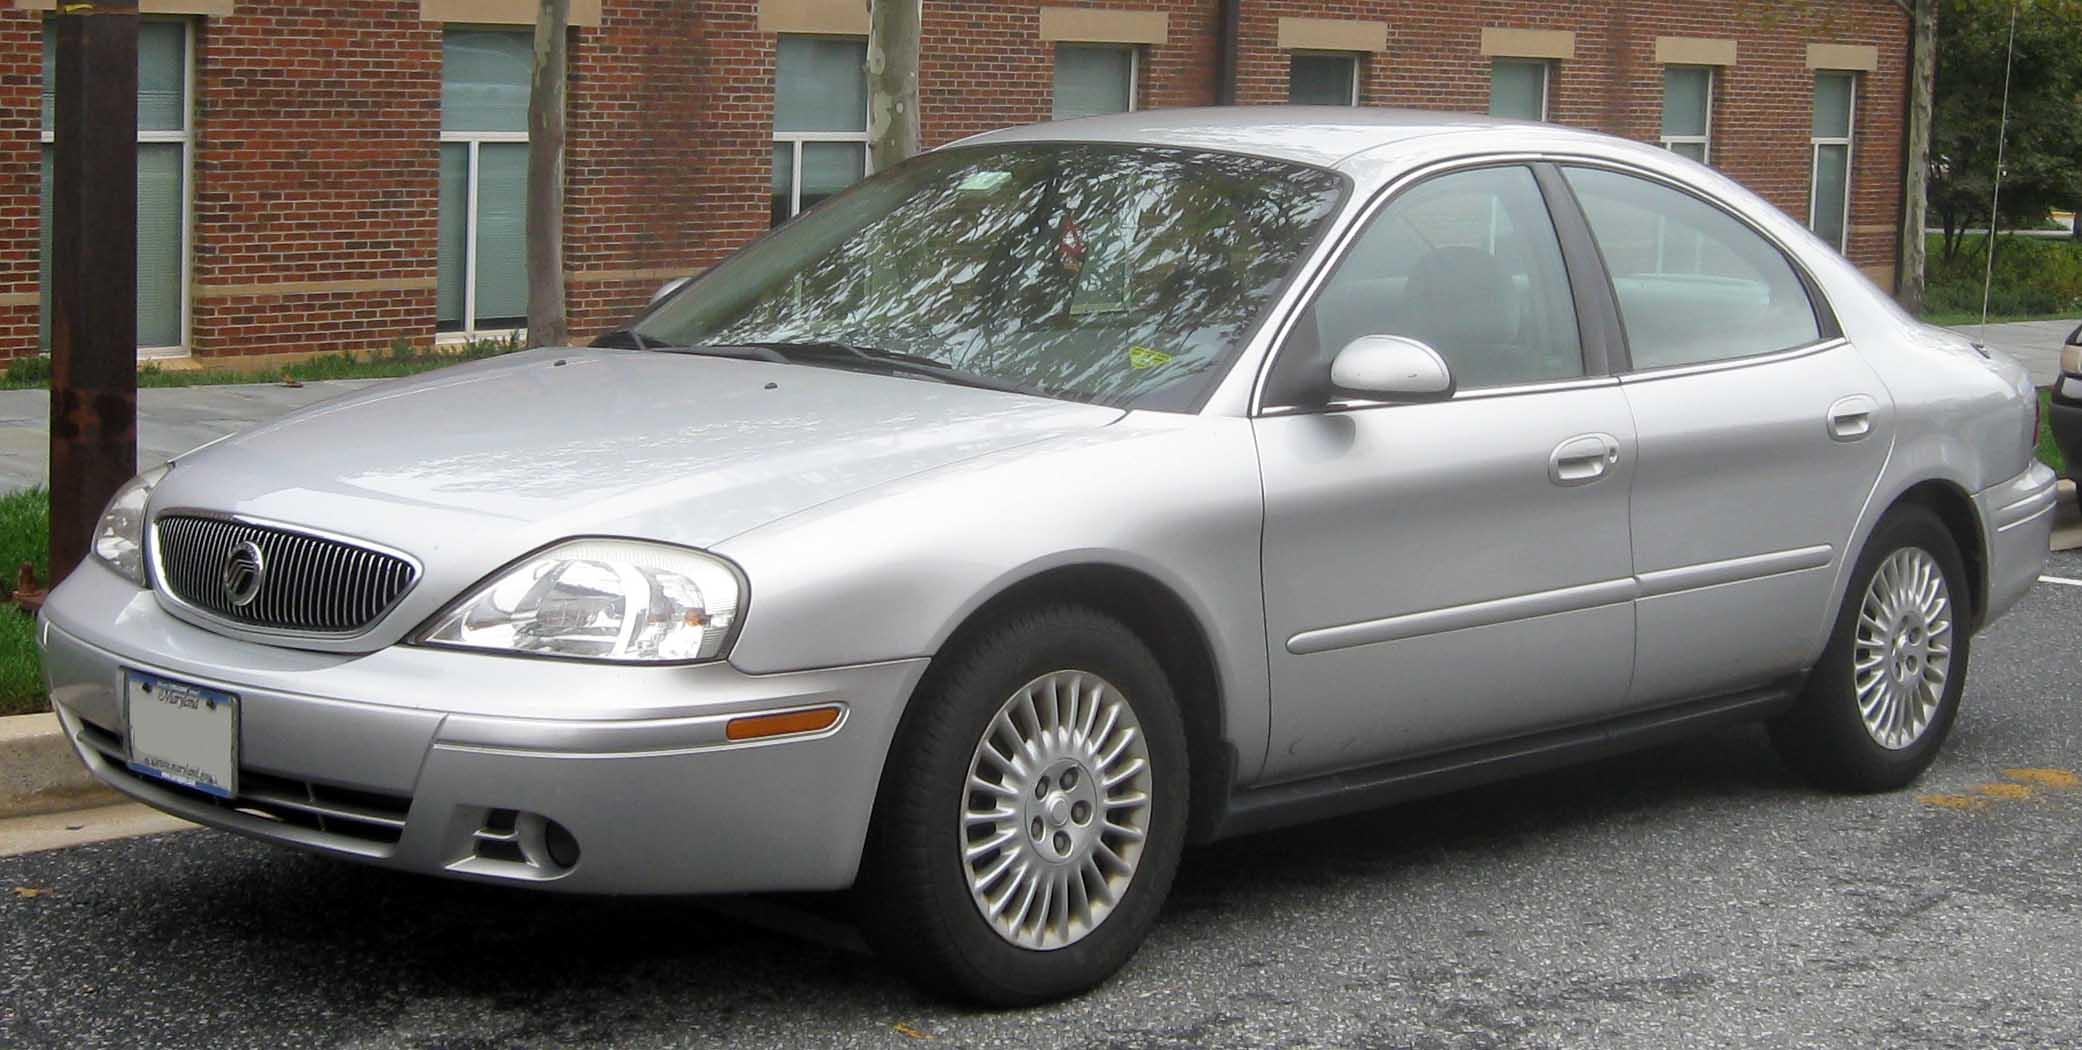 Mercury Sable #3